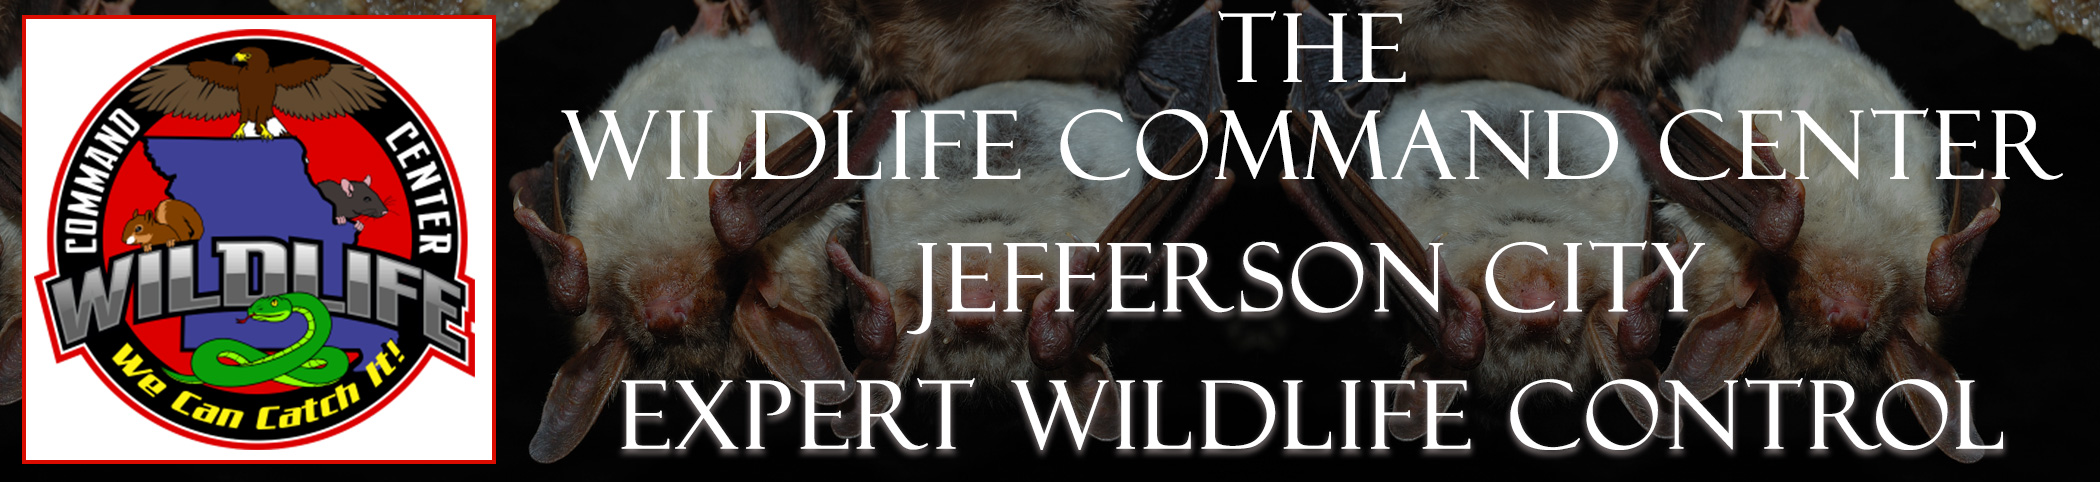 The Wildlife Command Center Jefferson City Missouri Image